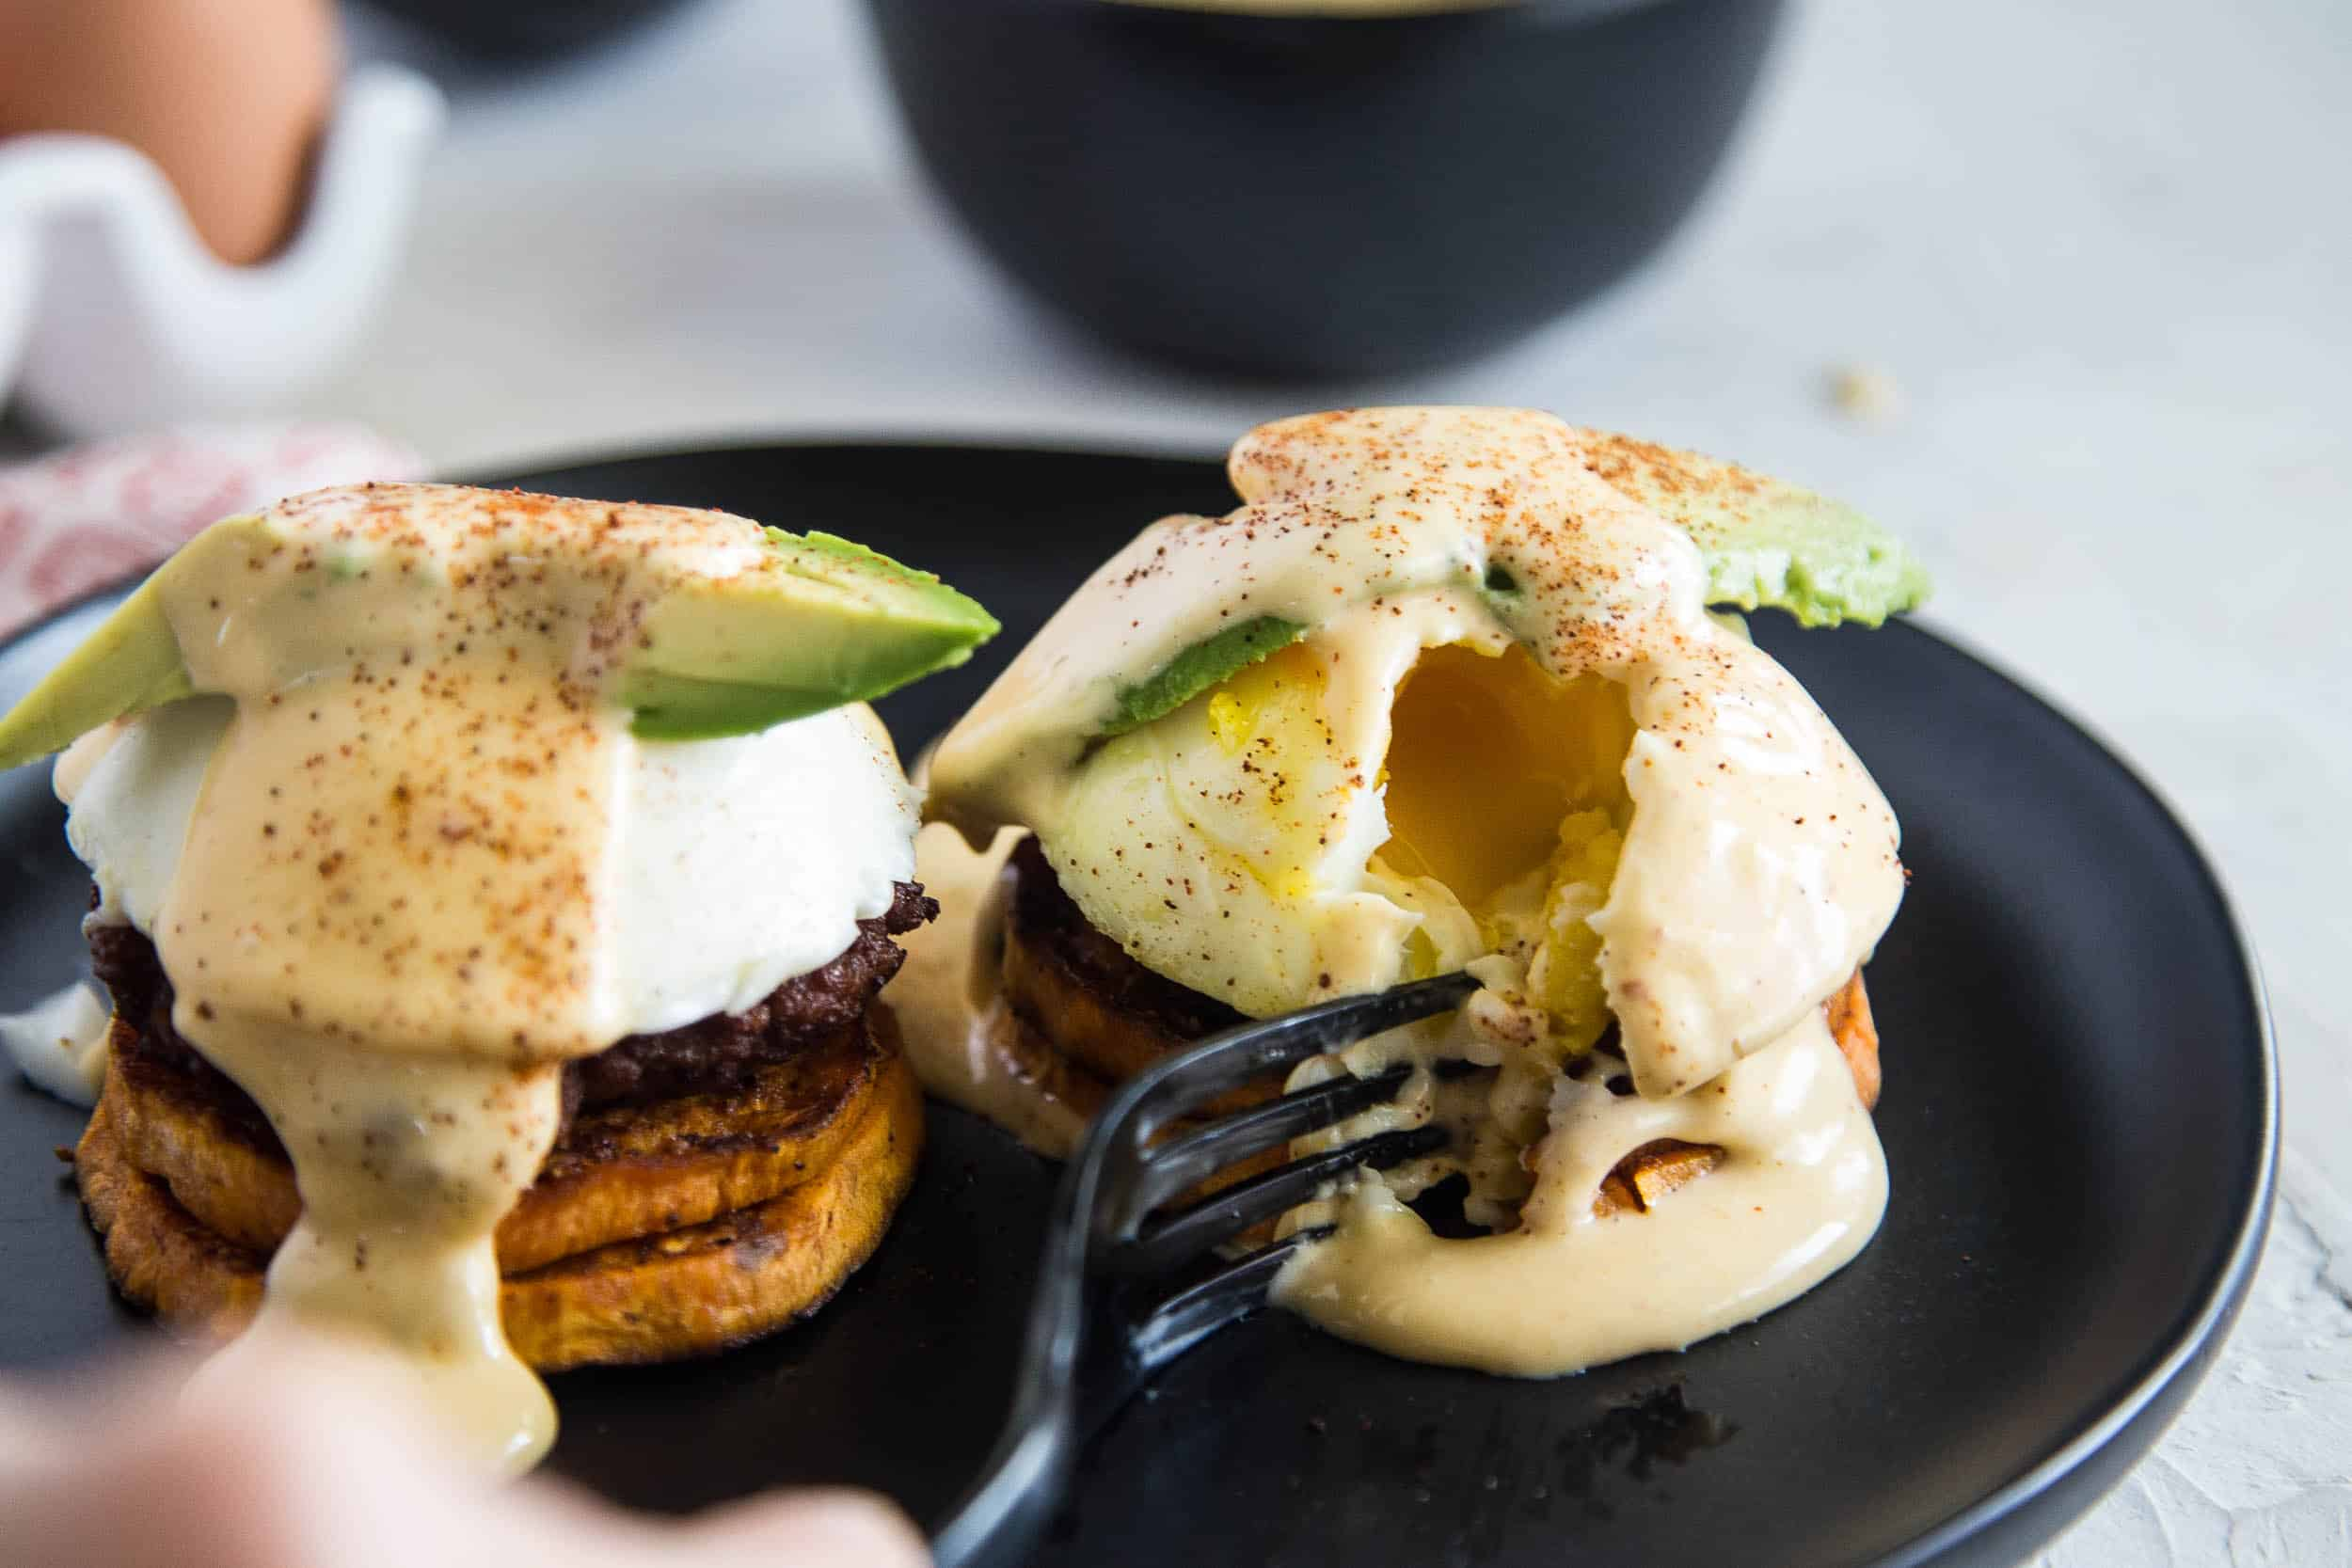 Make some poached eggs in your Instant Pot and make this Southwest Eggs Benedict with Chipotle-Lime Hollandaise. It'll blow your ever loving mind. Promise.